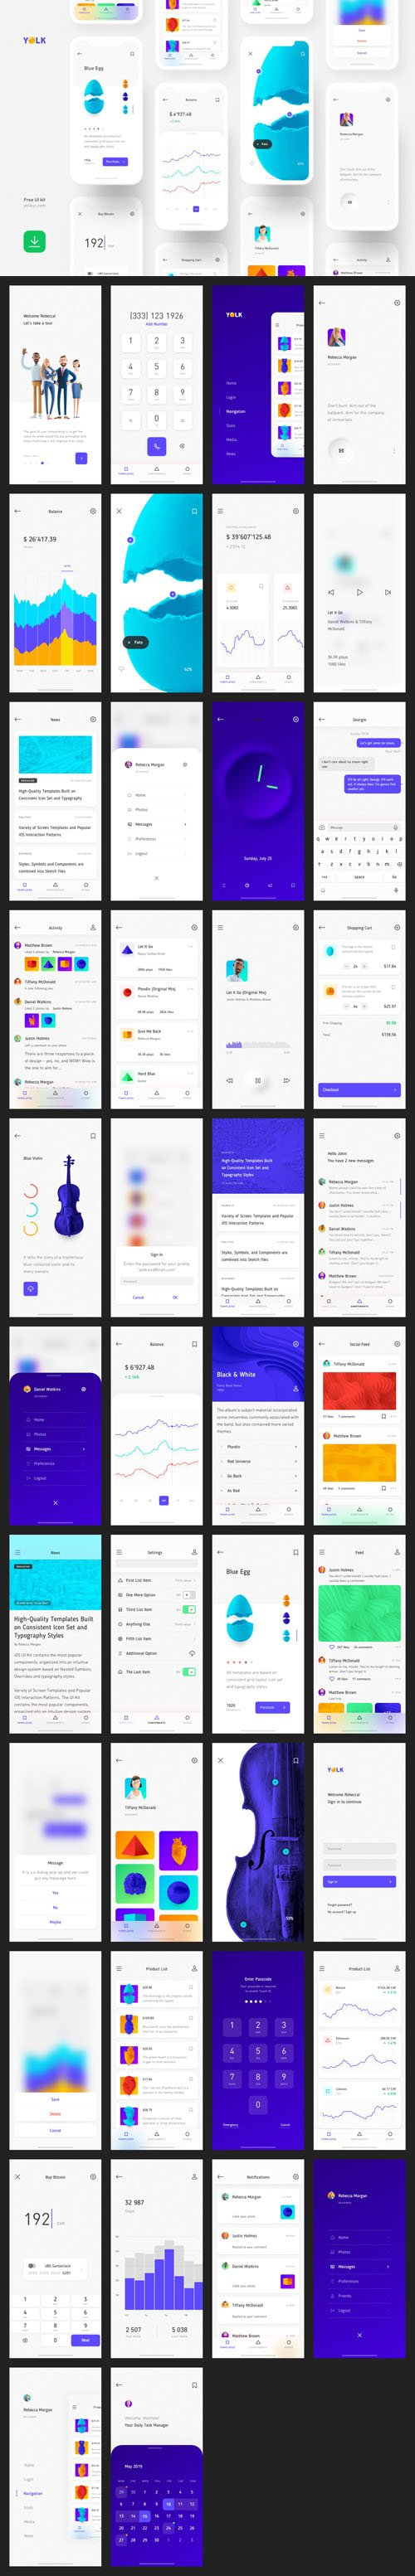 Yolk - iOS UI Kit for Sketch